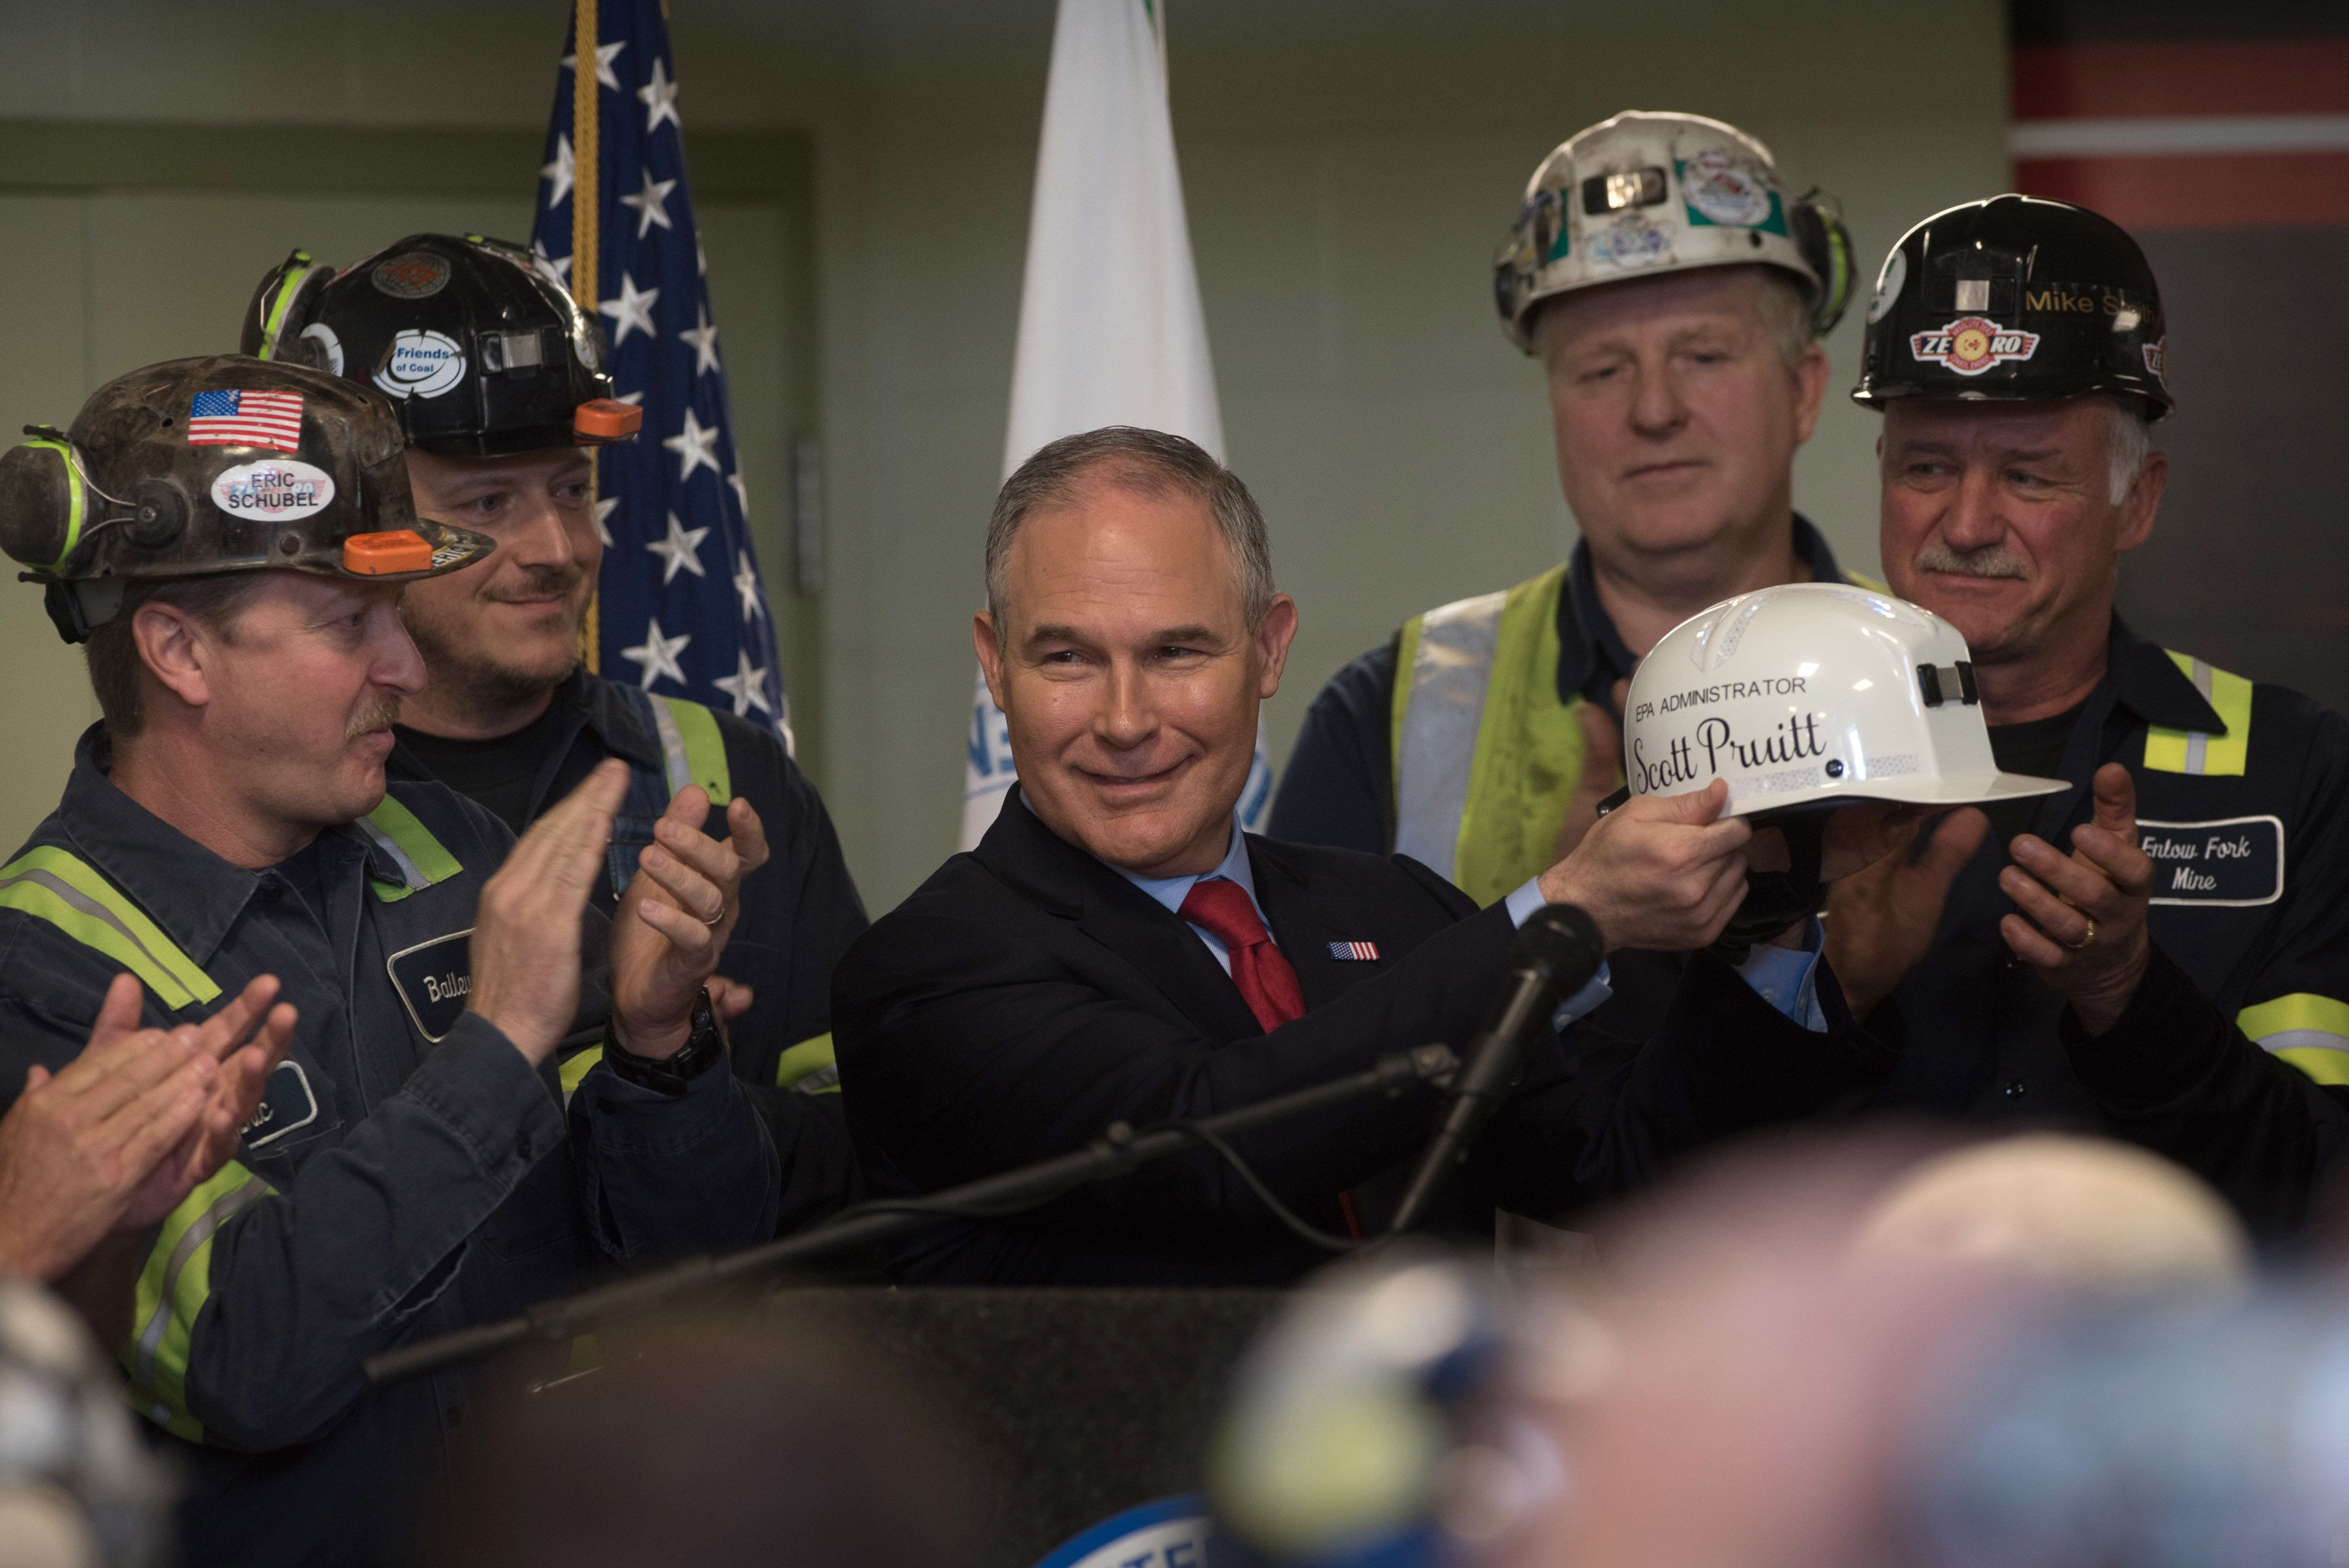 Scott Pruitt resigned in July amid mounting ethical scandals over his behavior as the EPA's administrator.